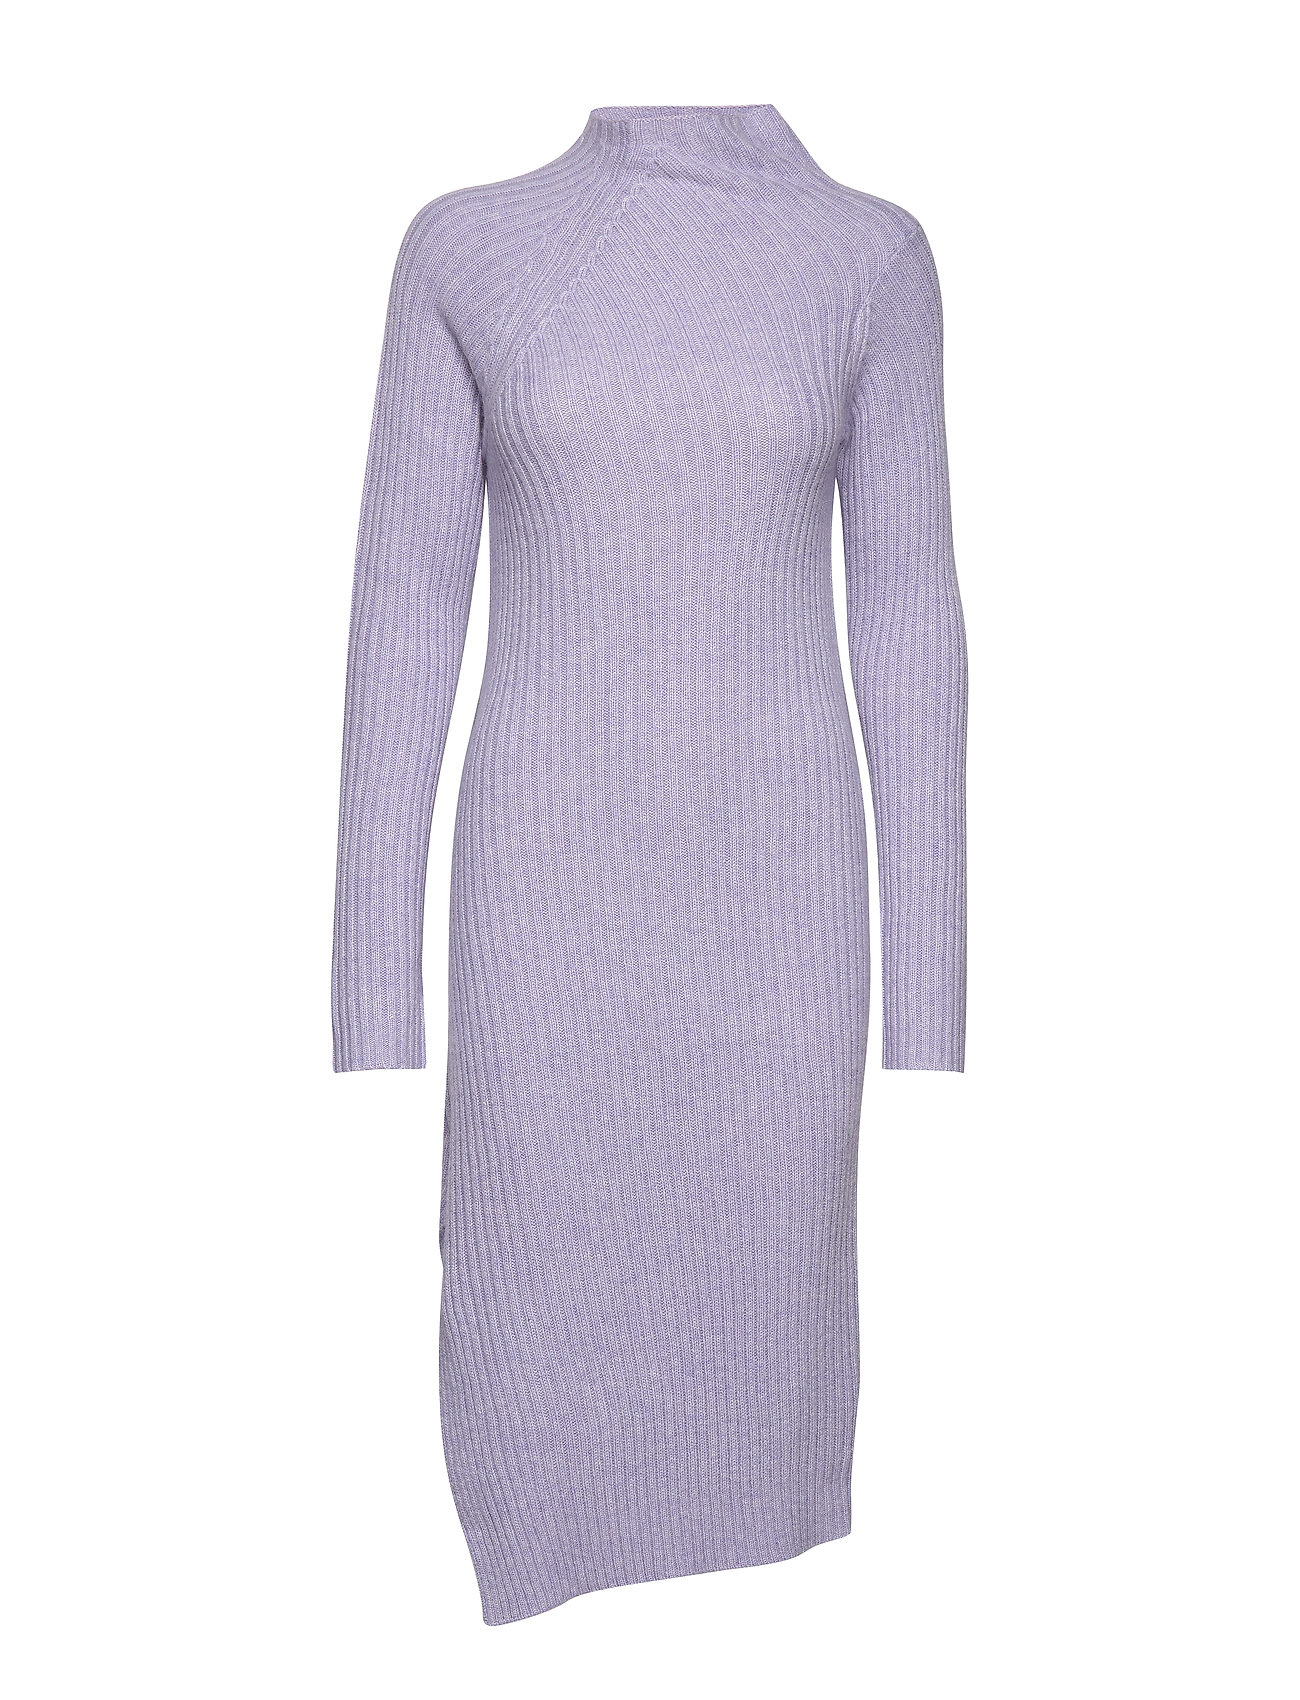 By Malene Birger MEGGIE - COOL LAVENDER